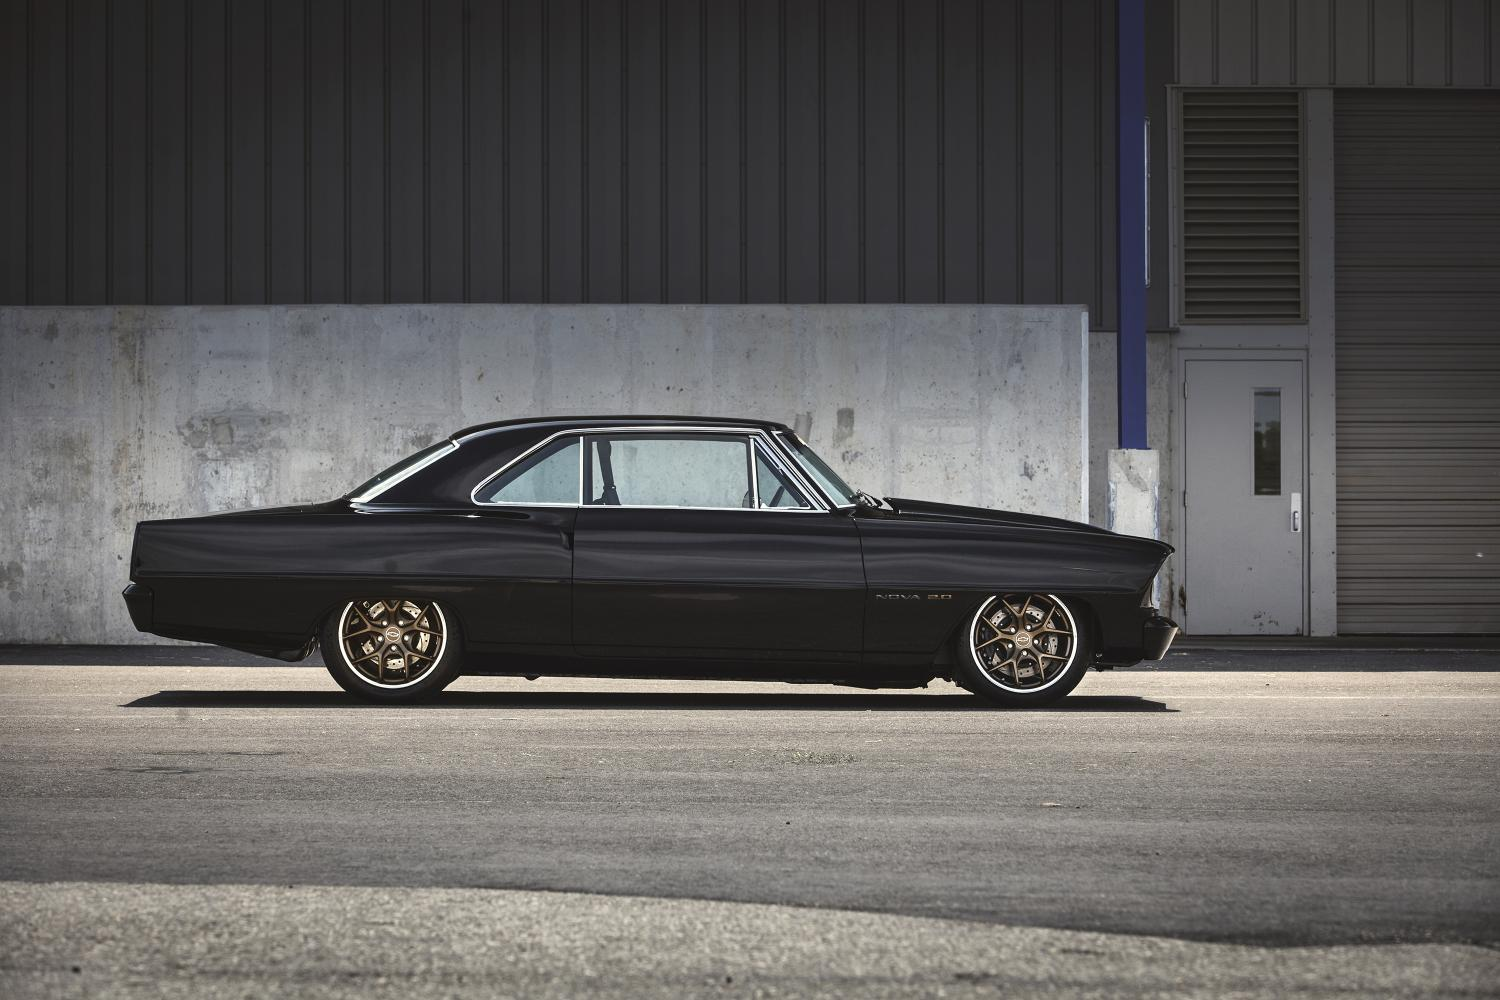 1967 Chevy Nova With 2l Turbo Four Ltg Crate Engine Debuts